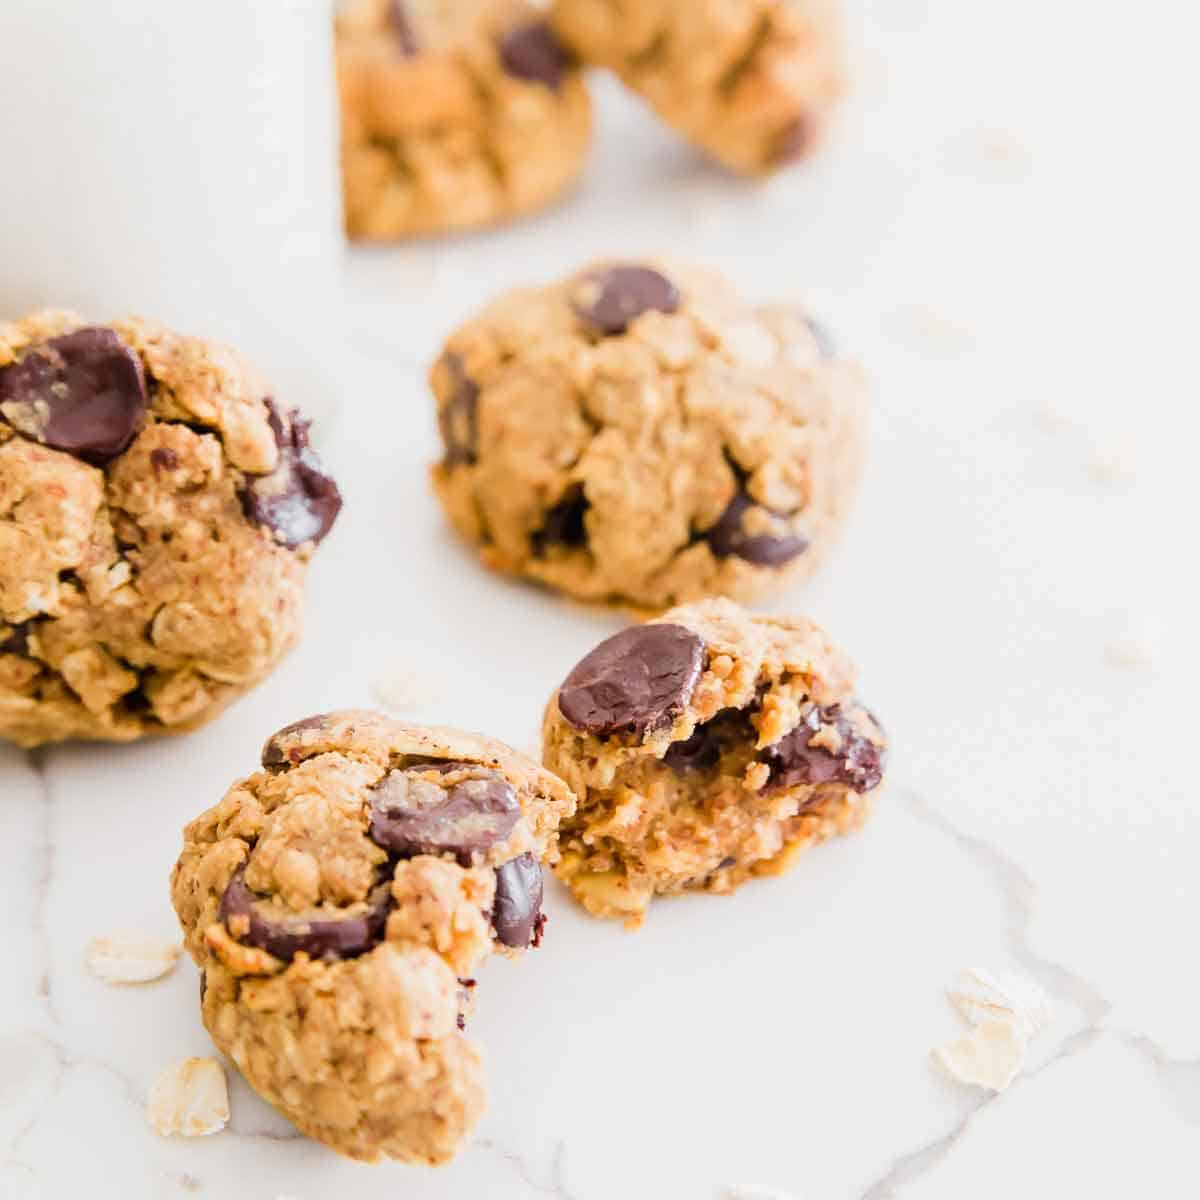 Gluten-free and vegan oatmeal chocolate chip cookies made with almond pulp